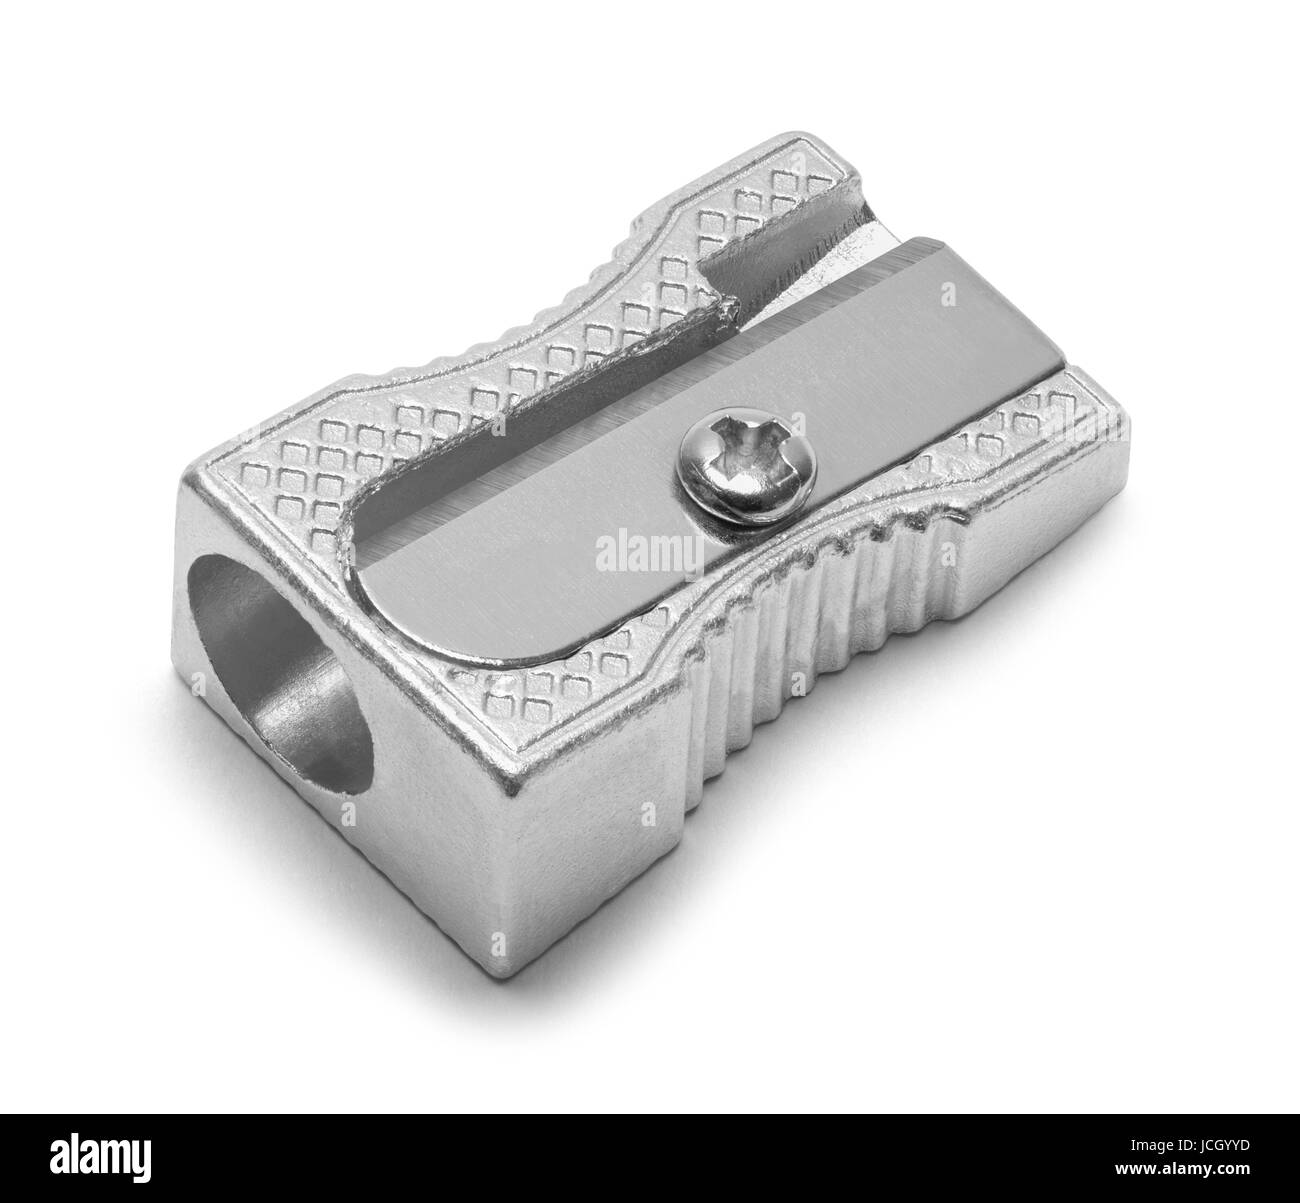 Metal Pencil Sharpener Isolated on White Background. - Stock Image